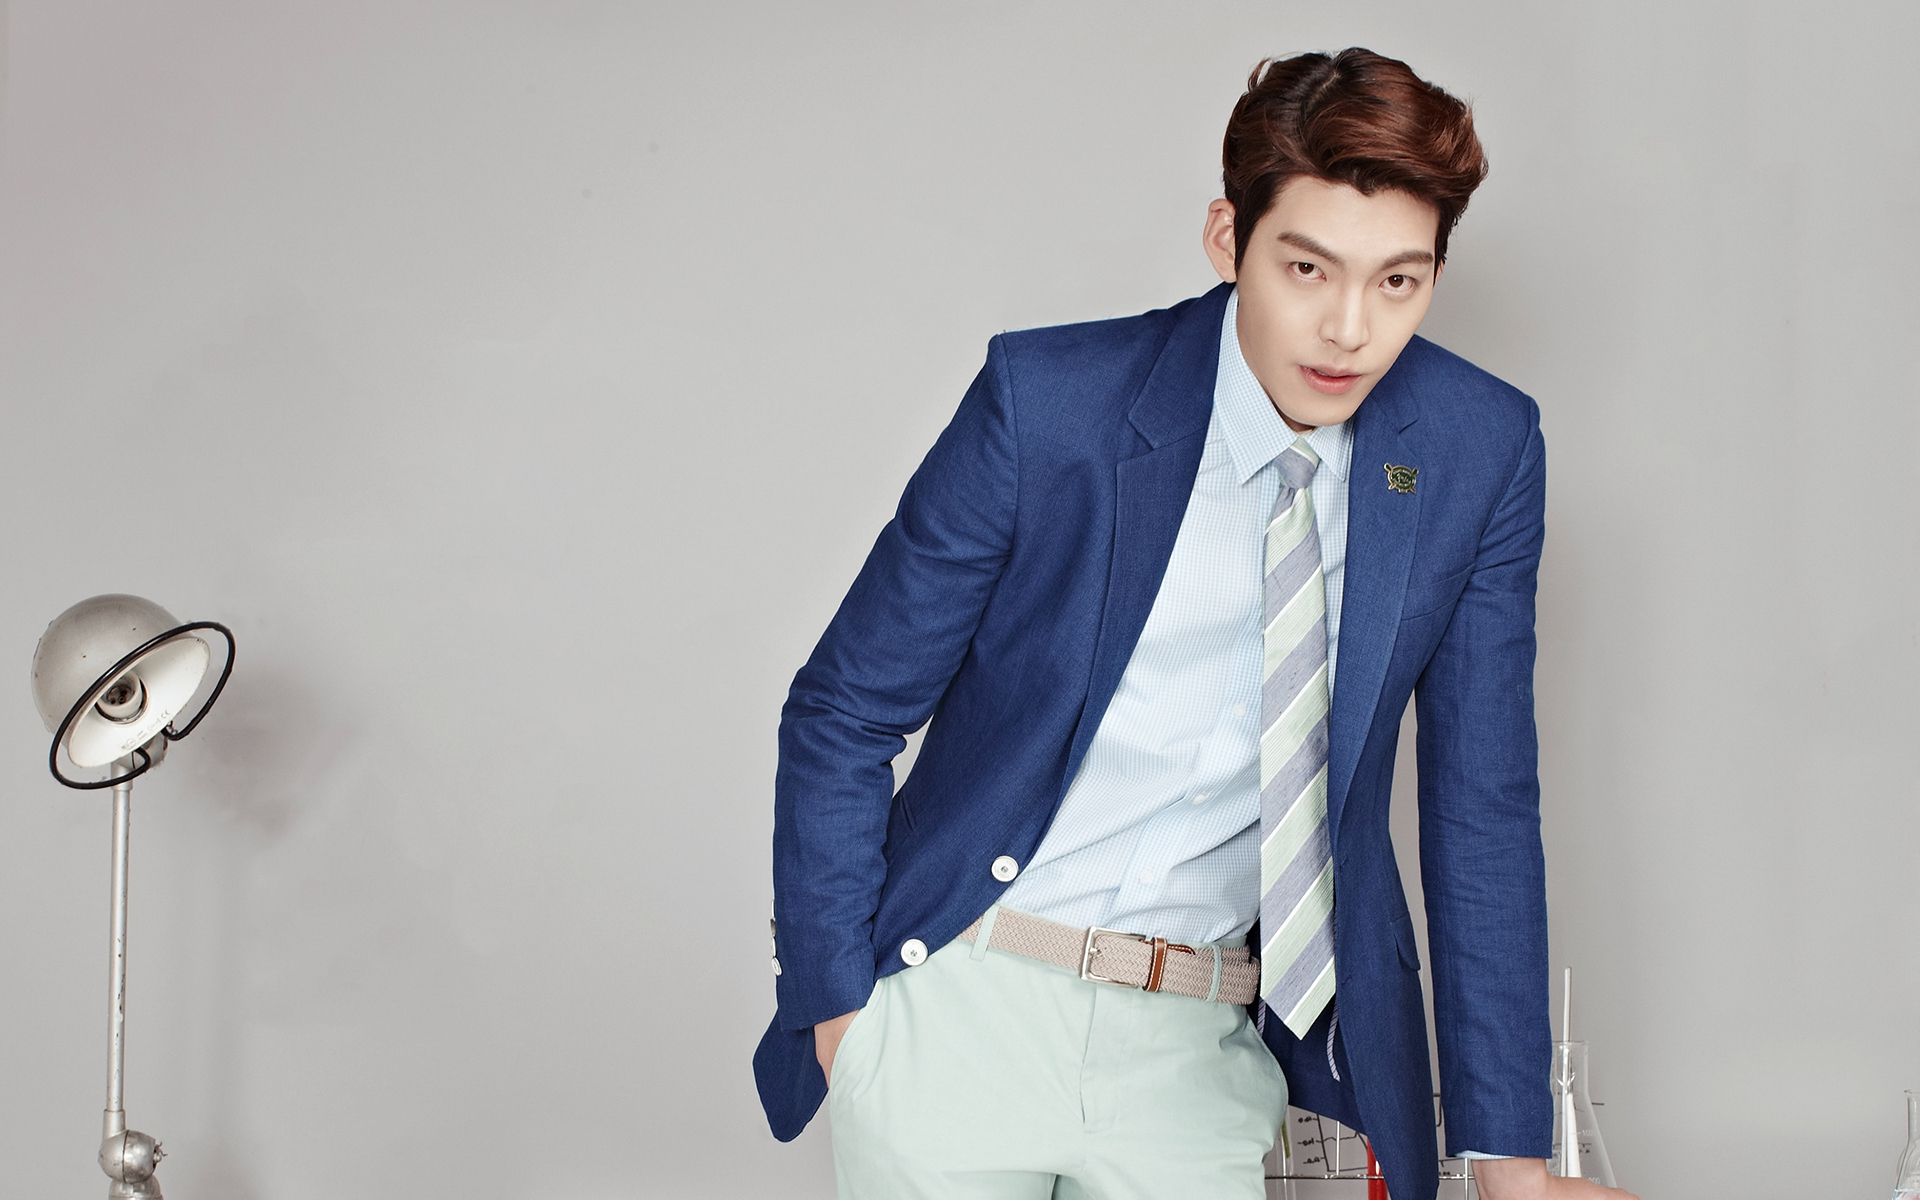 Kim Woo Bin Wallpapers Images Photos Pictures Backgrounds 1920x1200